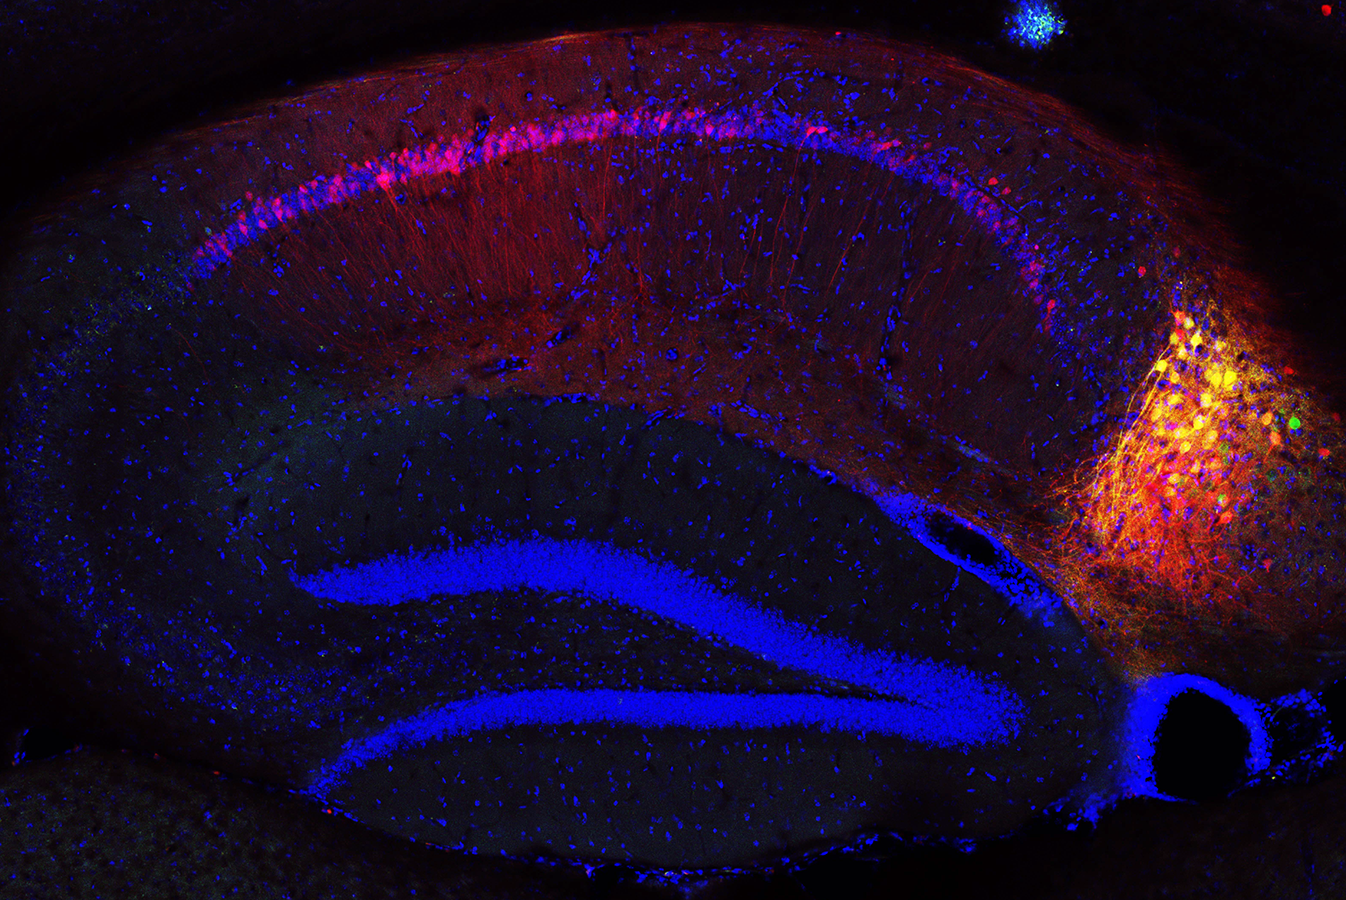 Identifying inputs to subiculum neurons